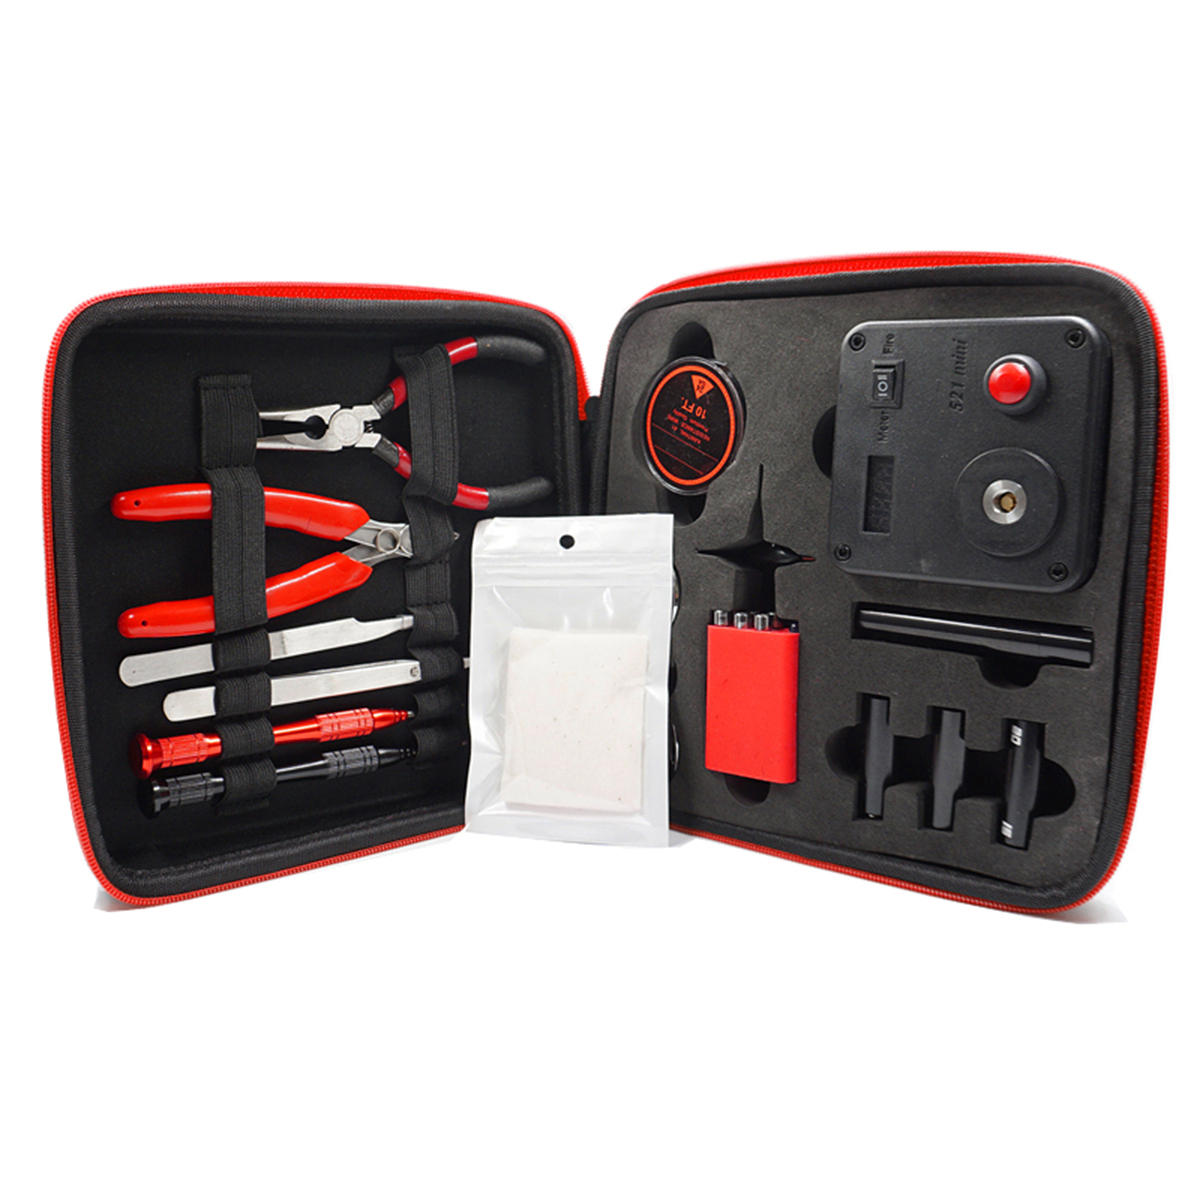 NEW Update Coil Master V3 DIY Kit All in One CoilMaster V3+ Electronic Cigarette RDA Atomizer coil tool bag Accessories Vape